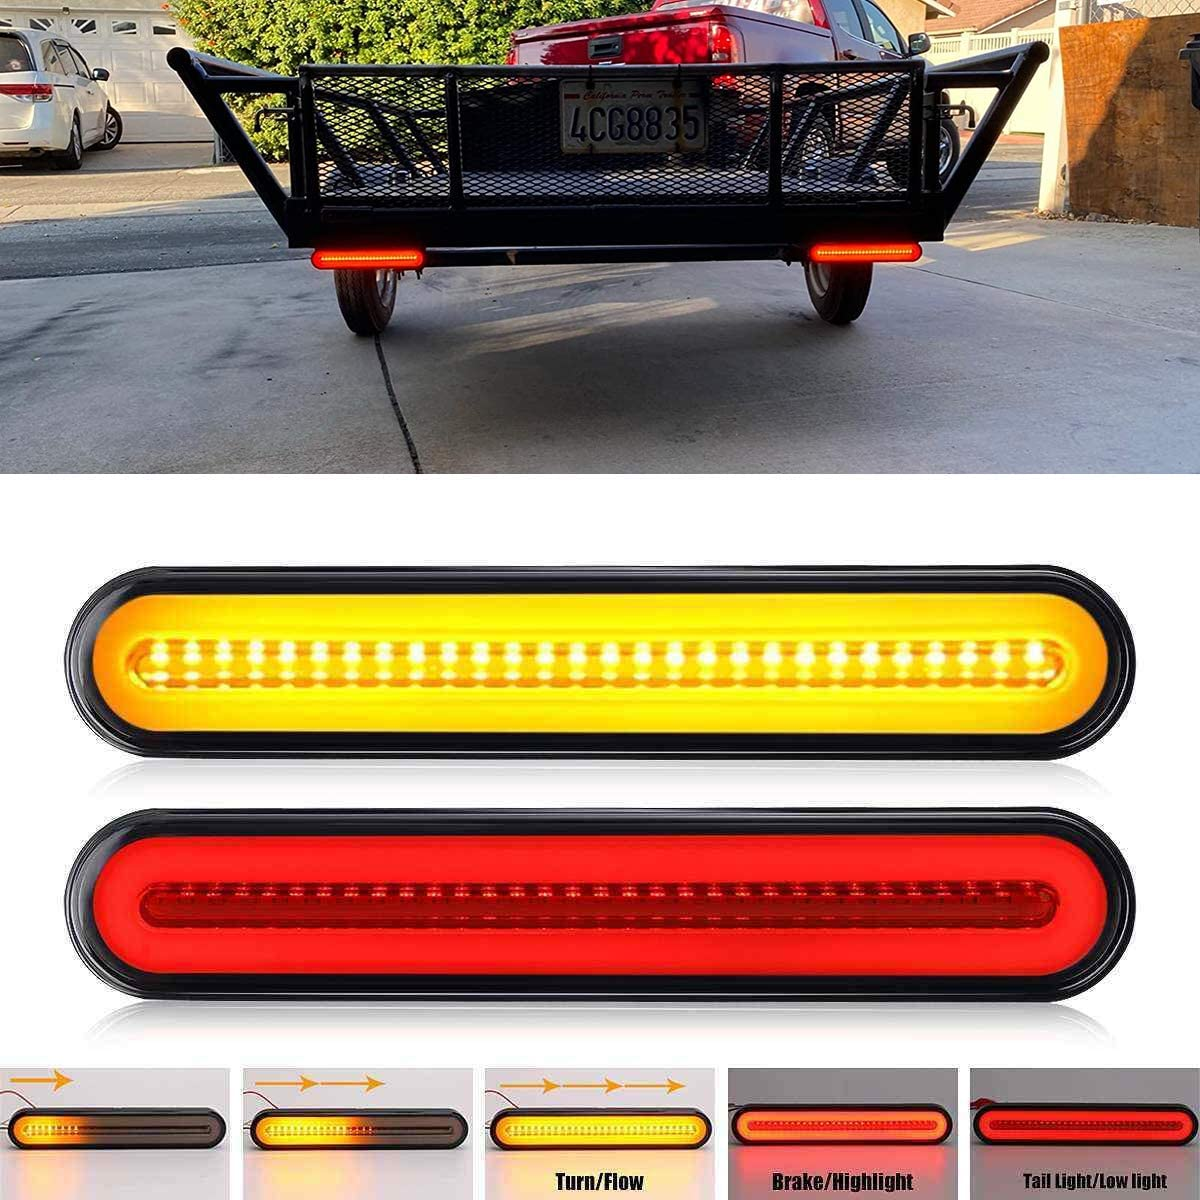 """FABOOD F 2PCS 9/"""" Inch Trailer 100 LED Tail Light Bar Red Sequential Spin Running Tail Light Flicker Brake Light Sequential Flowing Amber Turn Signal Taillight for Trailer Truck Pickup SUV RV Van"""